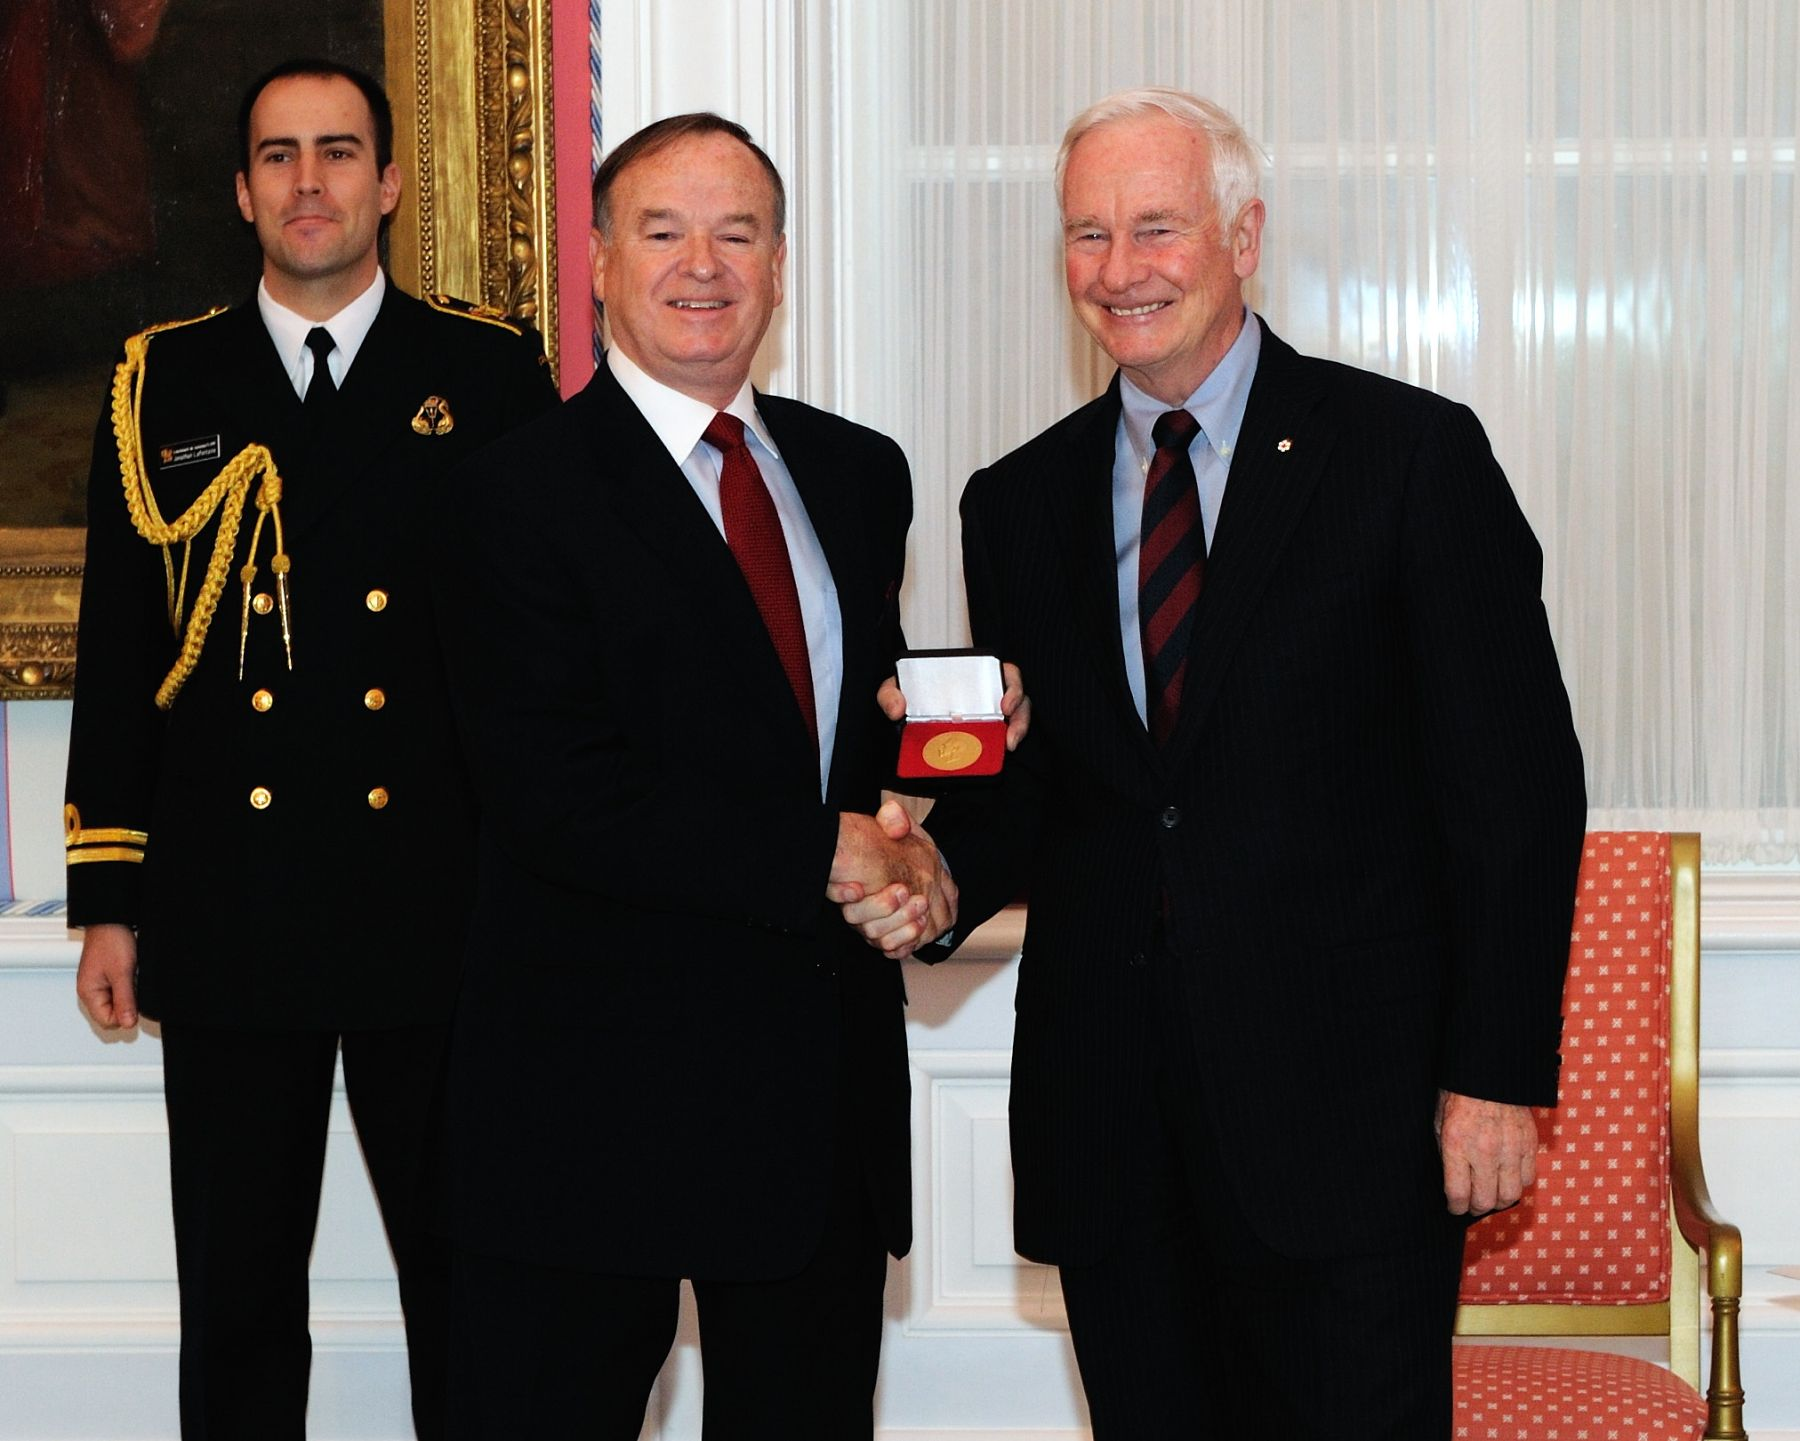 Mr. Davies proudly received the 2010 Vanier Medal from the hands of Governor General David Johnston.